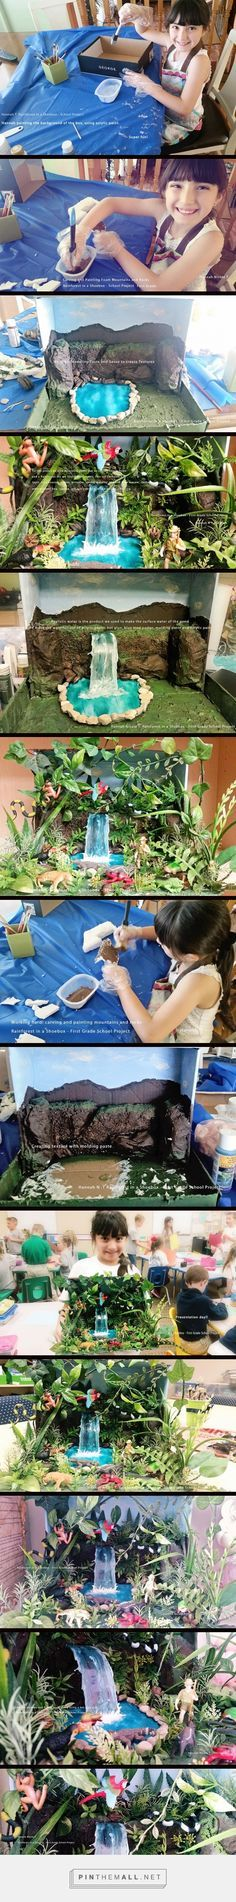 This is my version of the Rainforest shoebox diorama that we did with my daughter last year. I had no idea how to make this project and doing a research  I found a wonderful mom that inspired me to do this with confidence! Here is the link to the video I found, she did a wonderful job!! https://www.pinterest.com/pin/286611963762778976/. Here are the  photos of the steps and materials that I used  to do this project.  Thank you for looking! I used pinthemall.net to upload the photos!